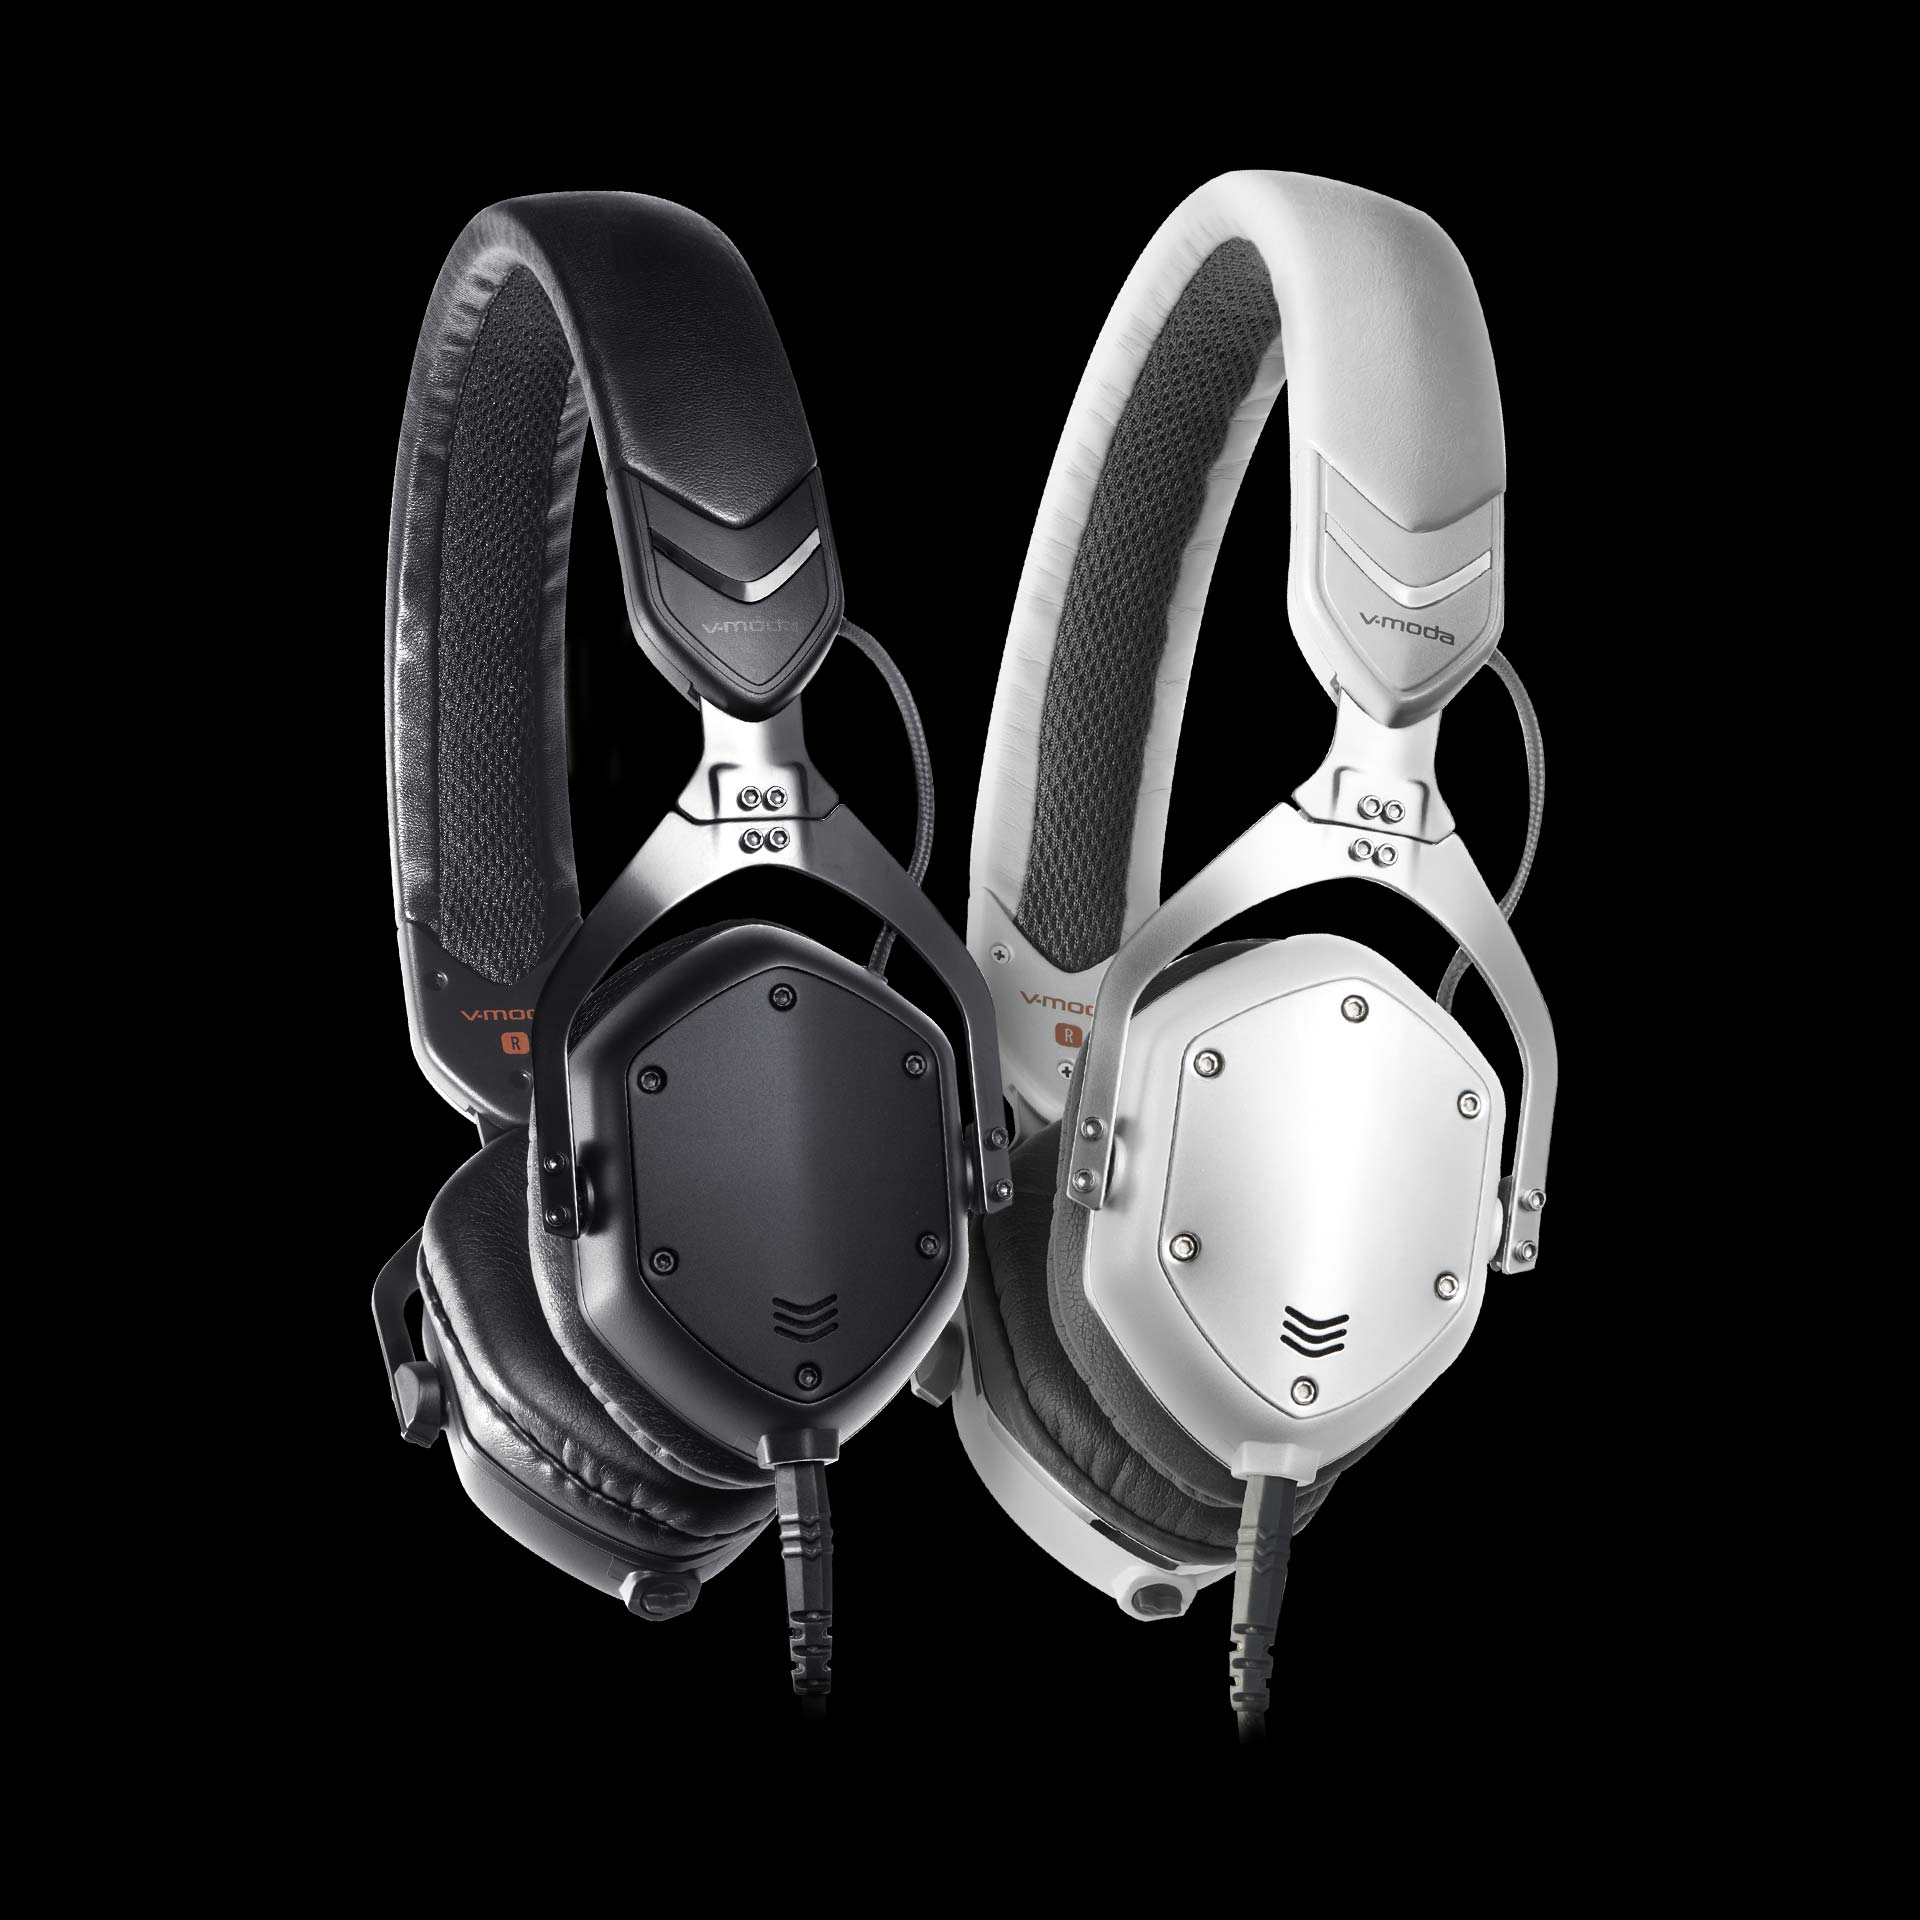 XS On-Ear Headphones in Black and White